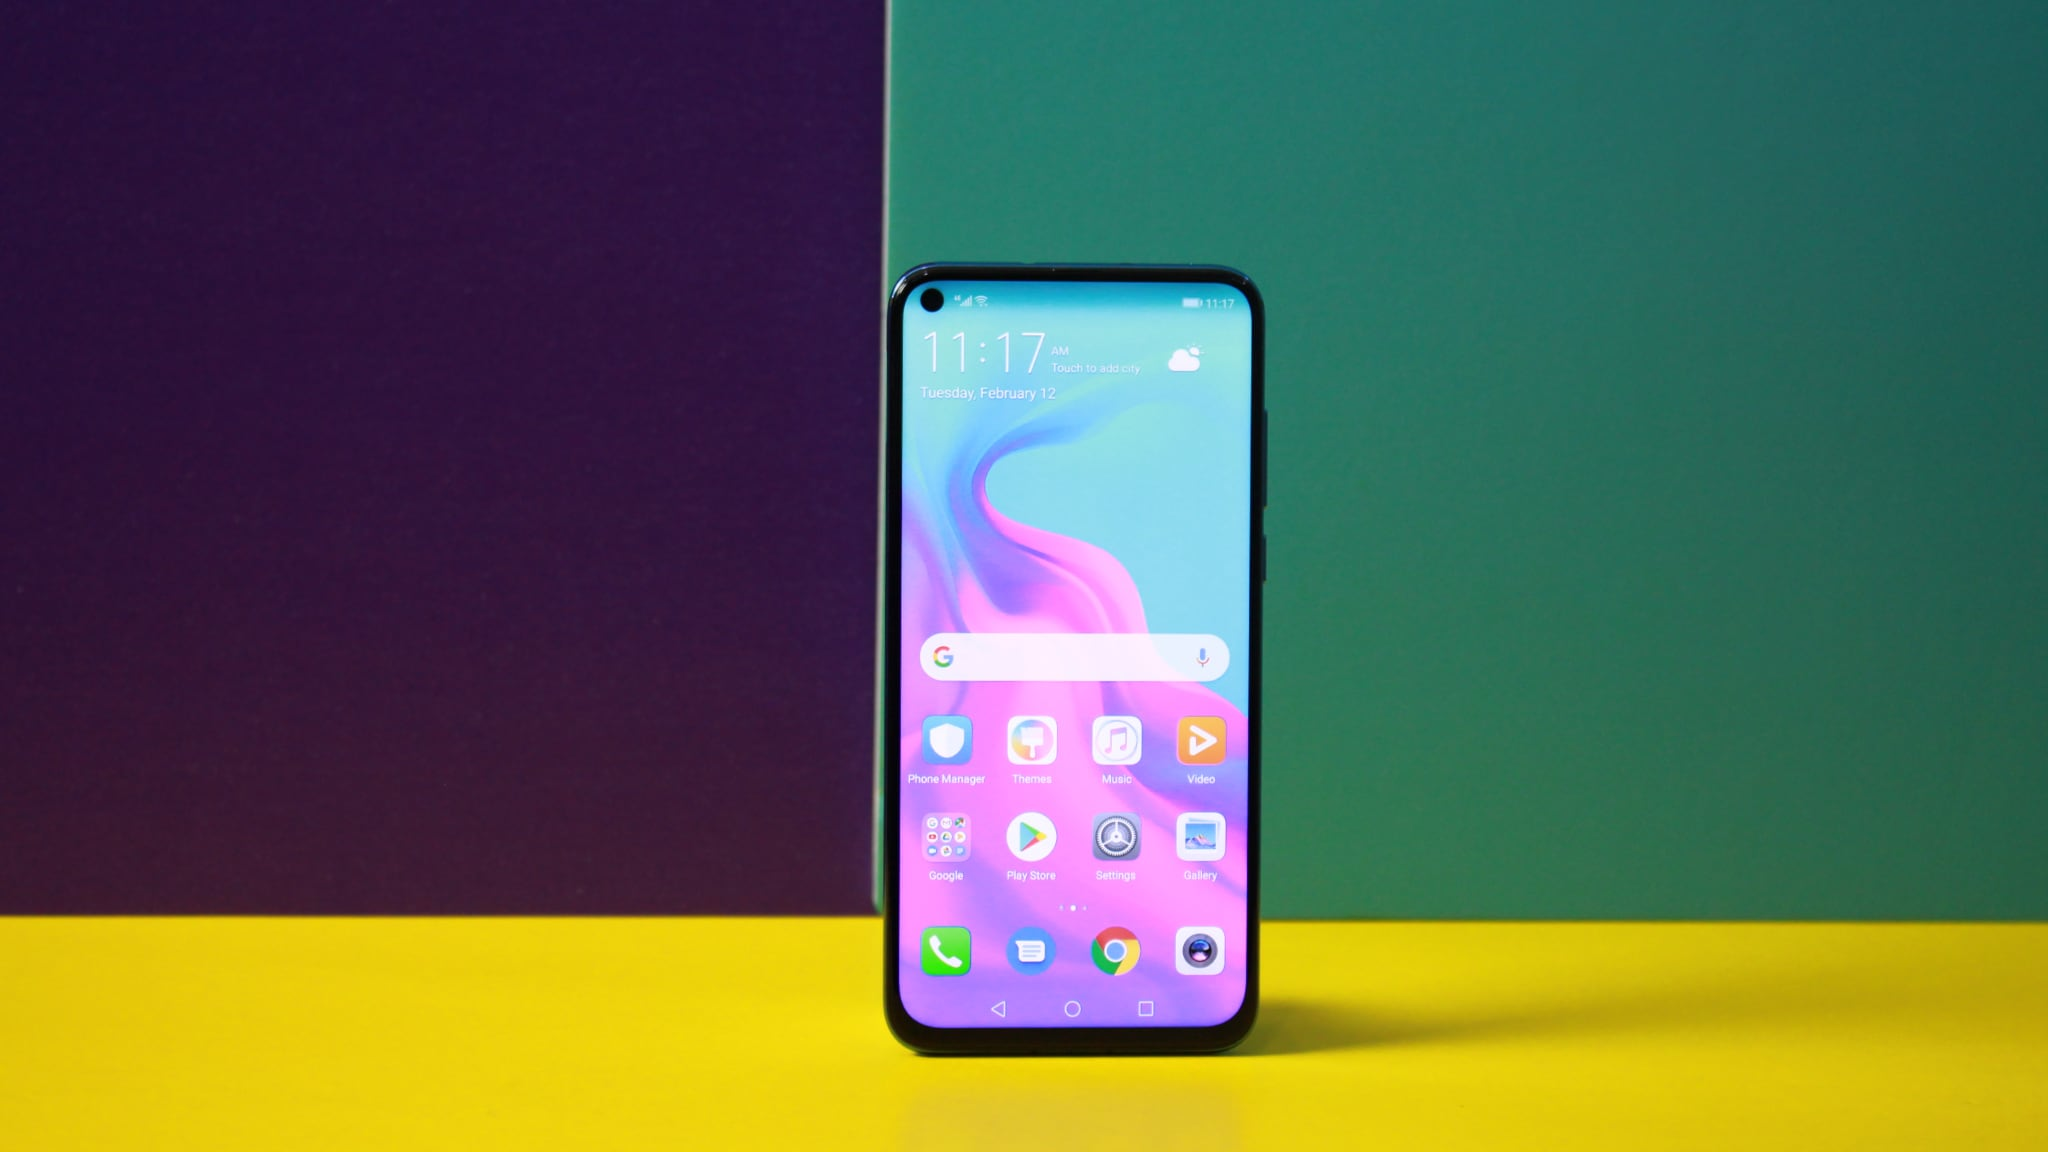 Hands on: HUAWEI nova 4 review | TechRadar